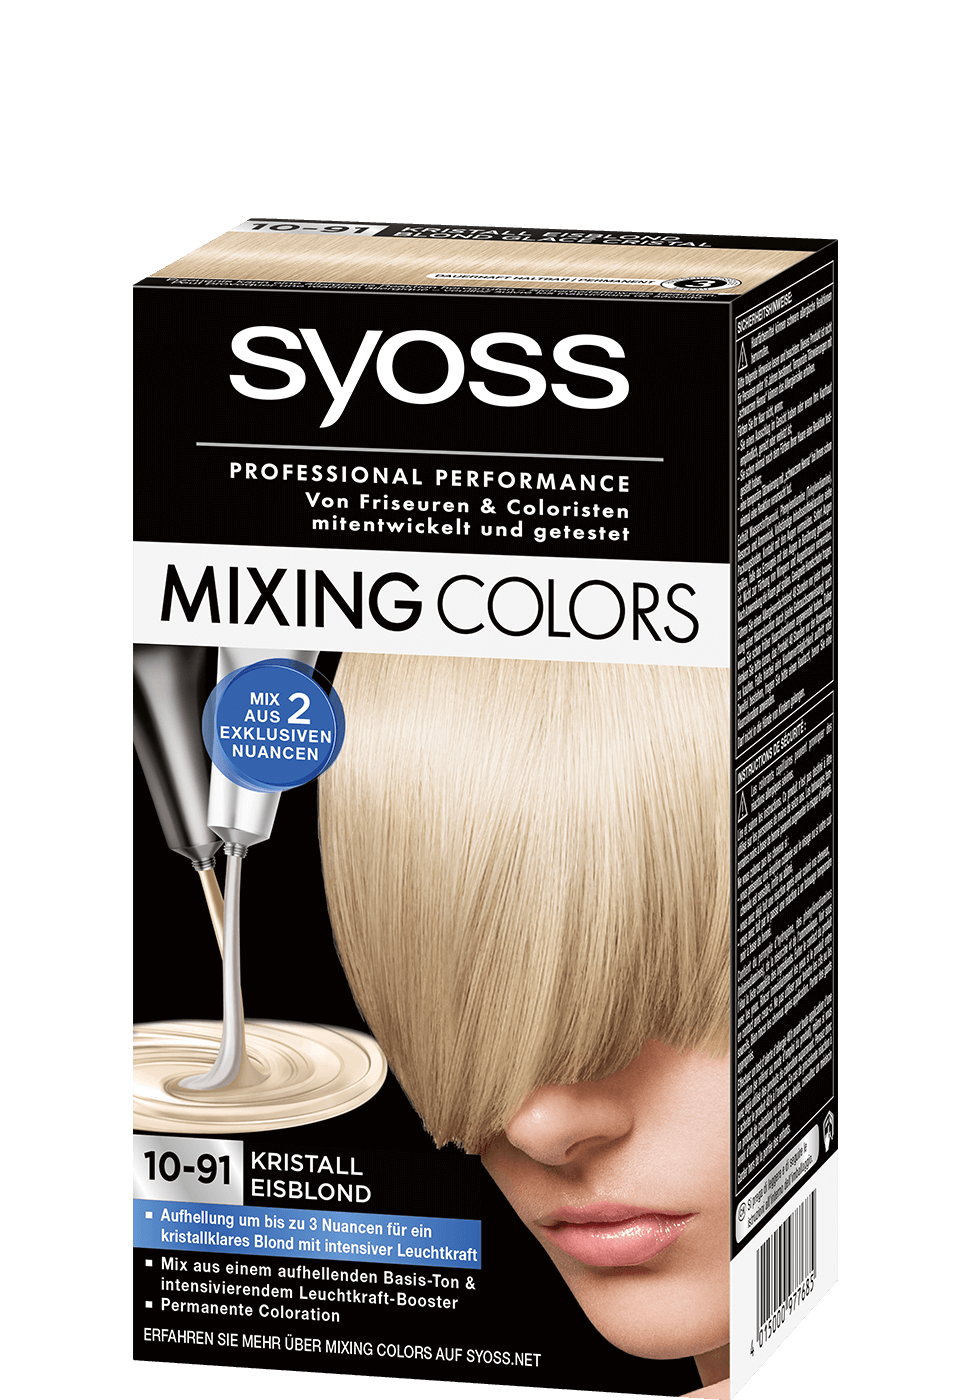 Syoss Mixing Colors 10-91 Kristall Eisblond